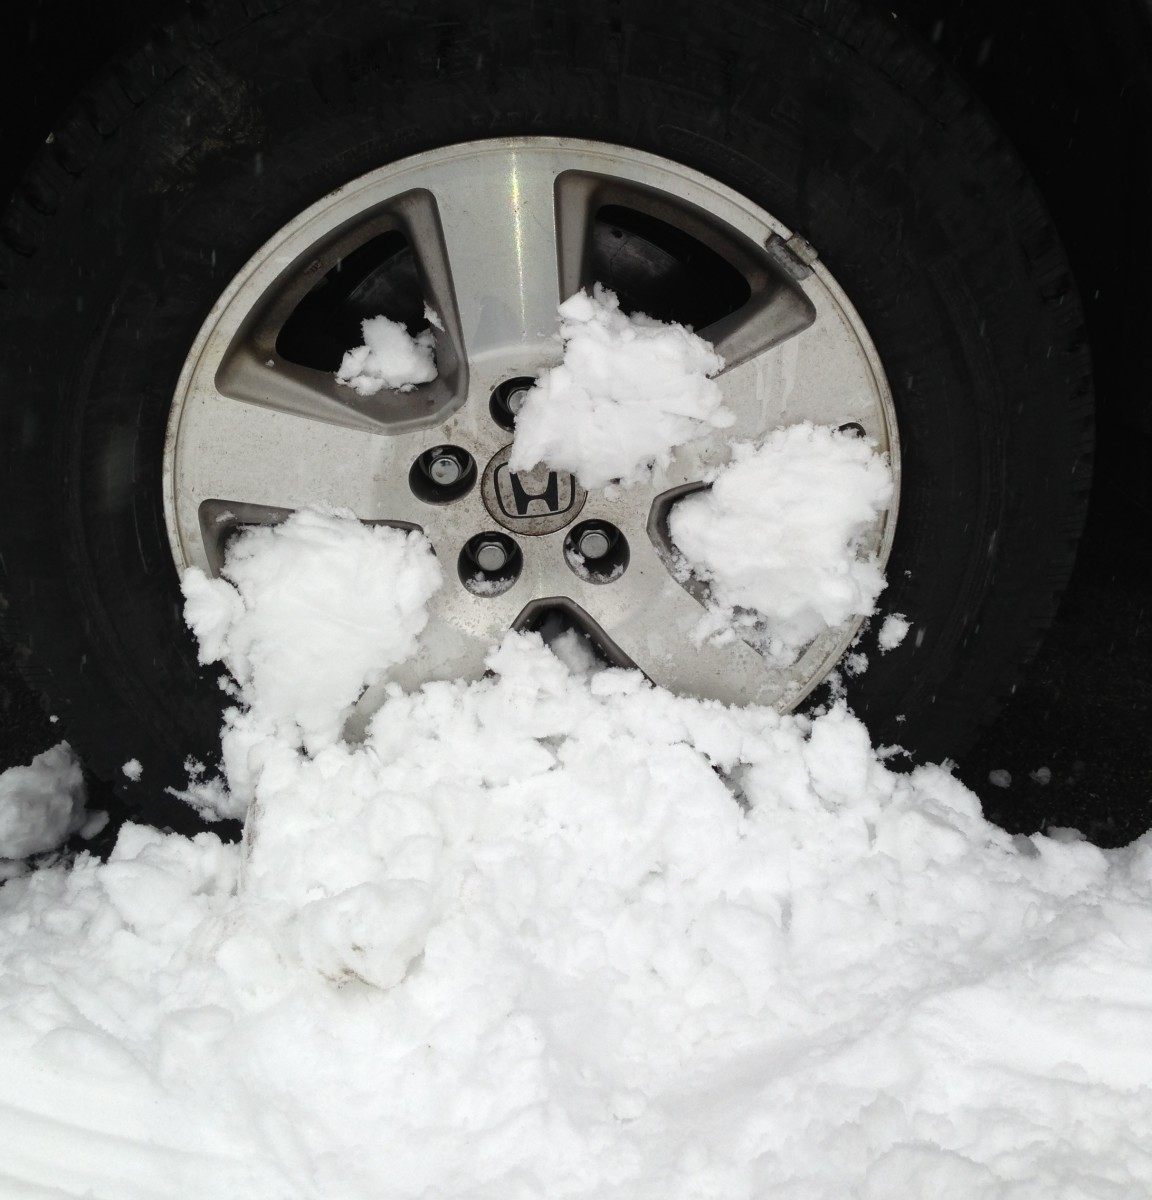 If you drive through a snow bank and have a horrible vibration soon after, check your wheels for packed snow and ice.